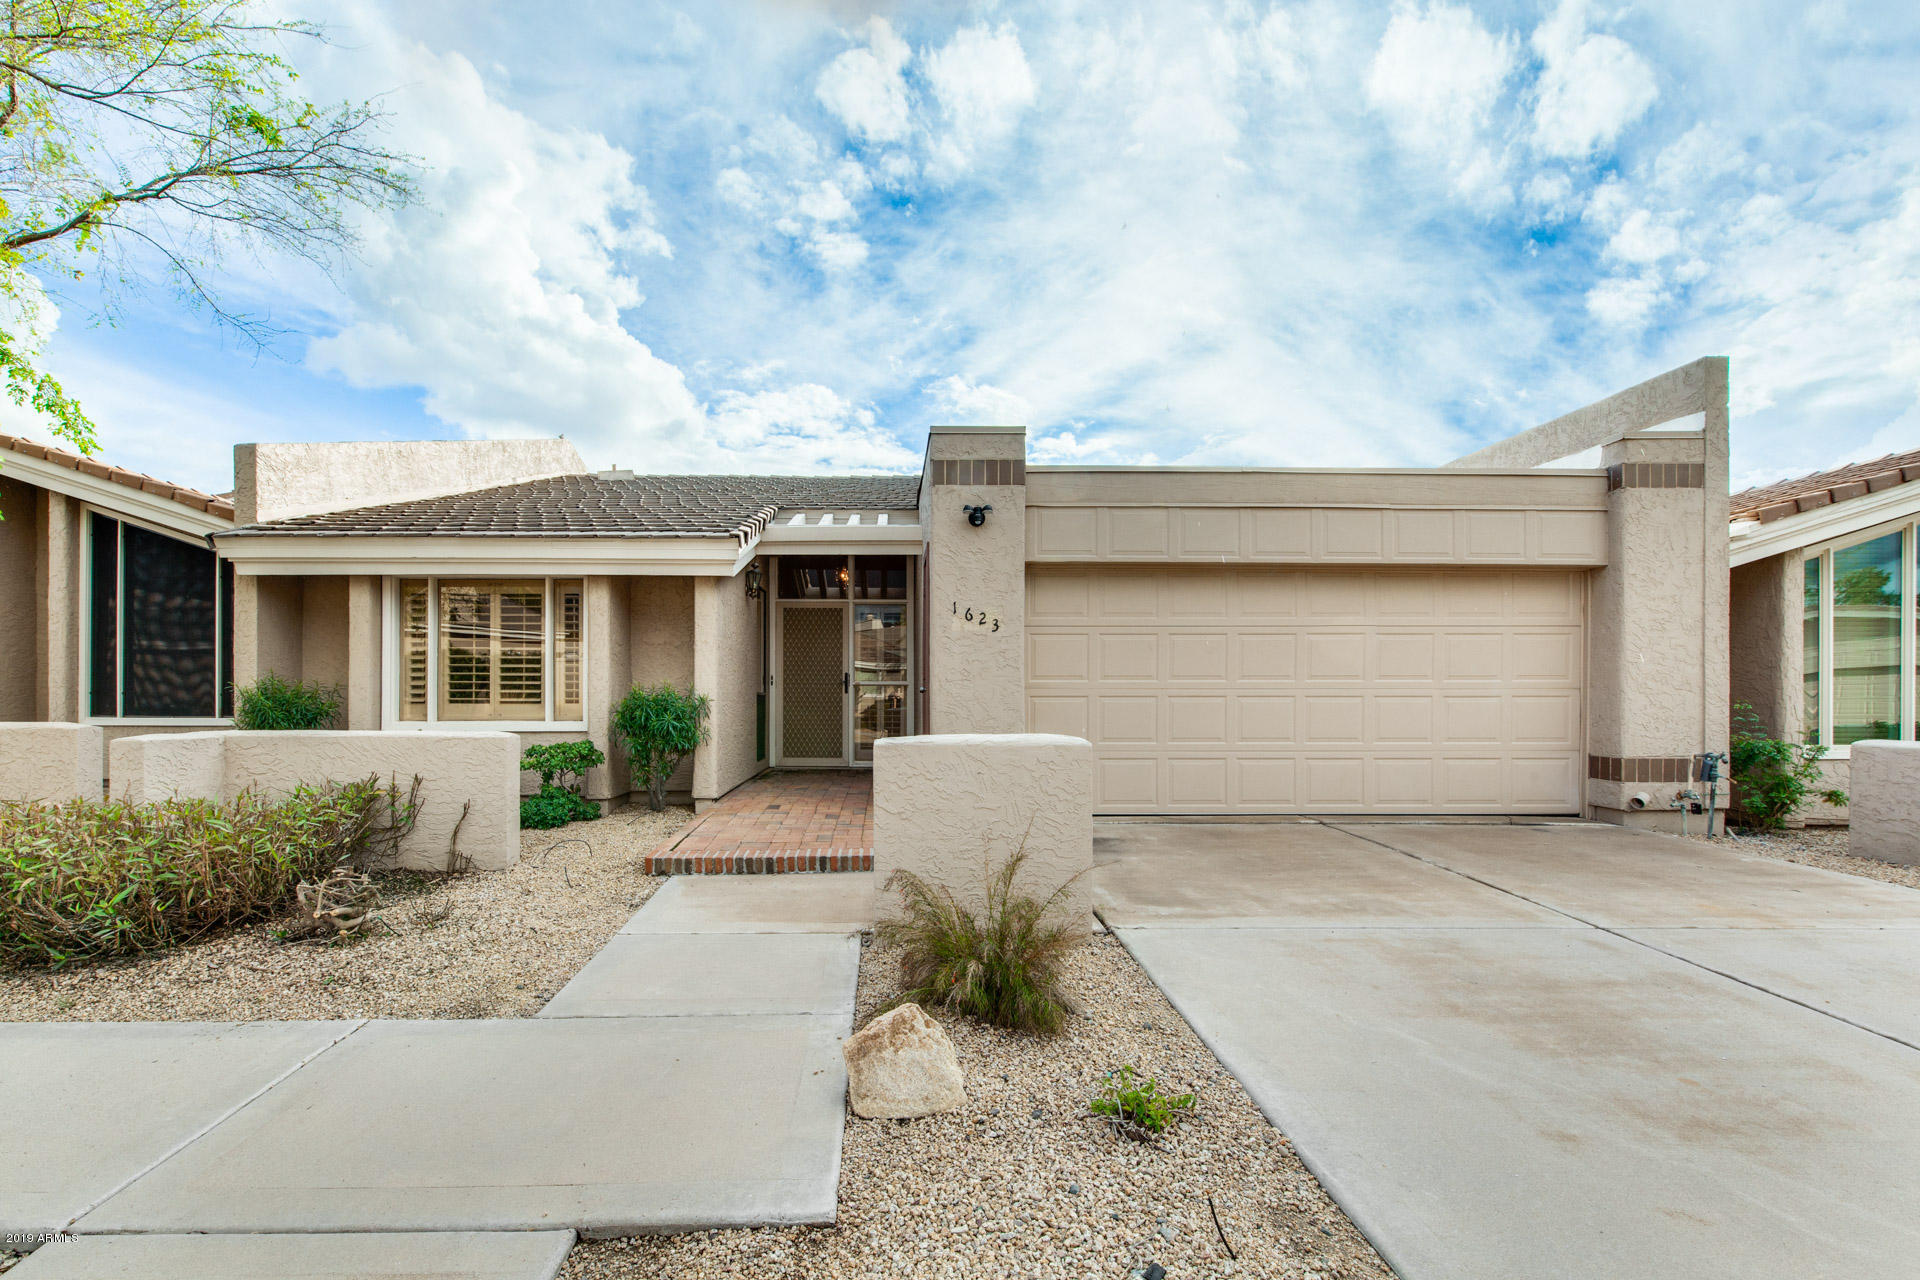 Photo of 1623 E CACTUS WREN Drive, Phoenix, AZ 85020